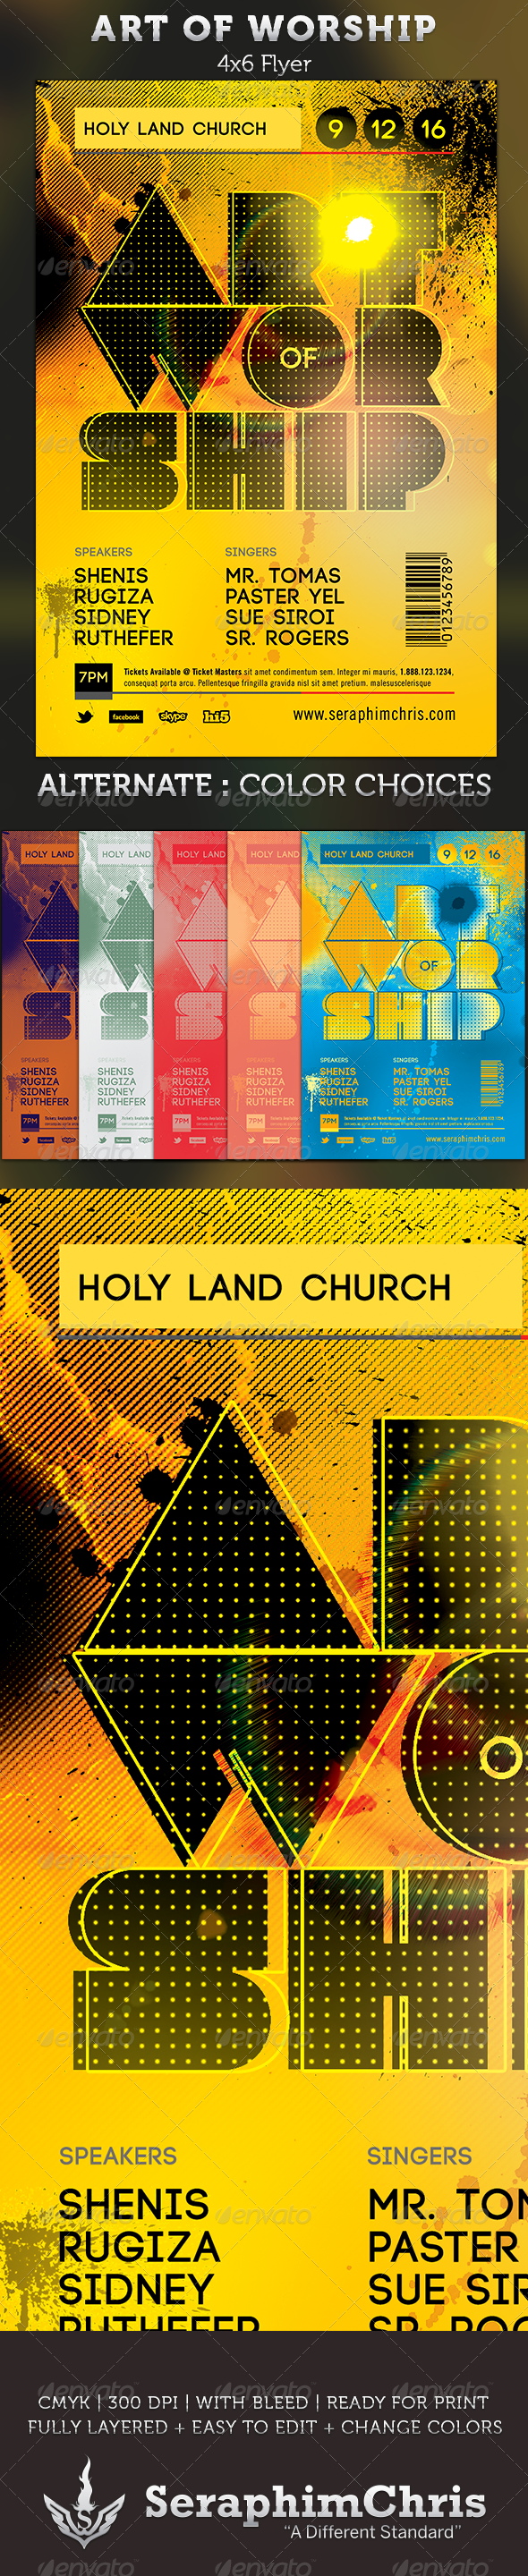 Art of Worship: Gospel Concert Flyer Template - Church Flyers